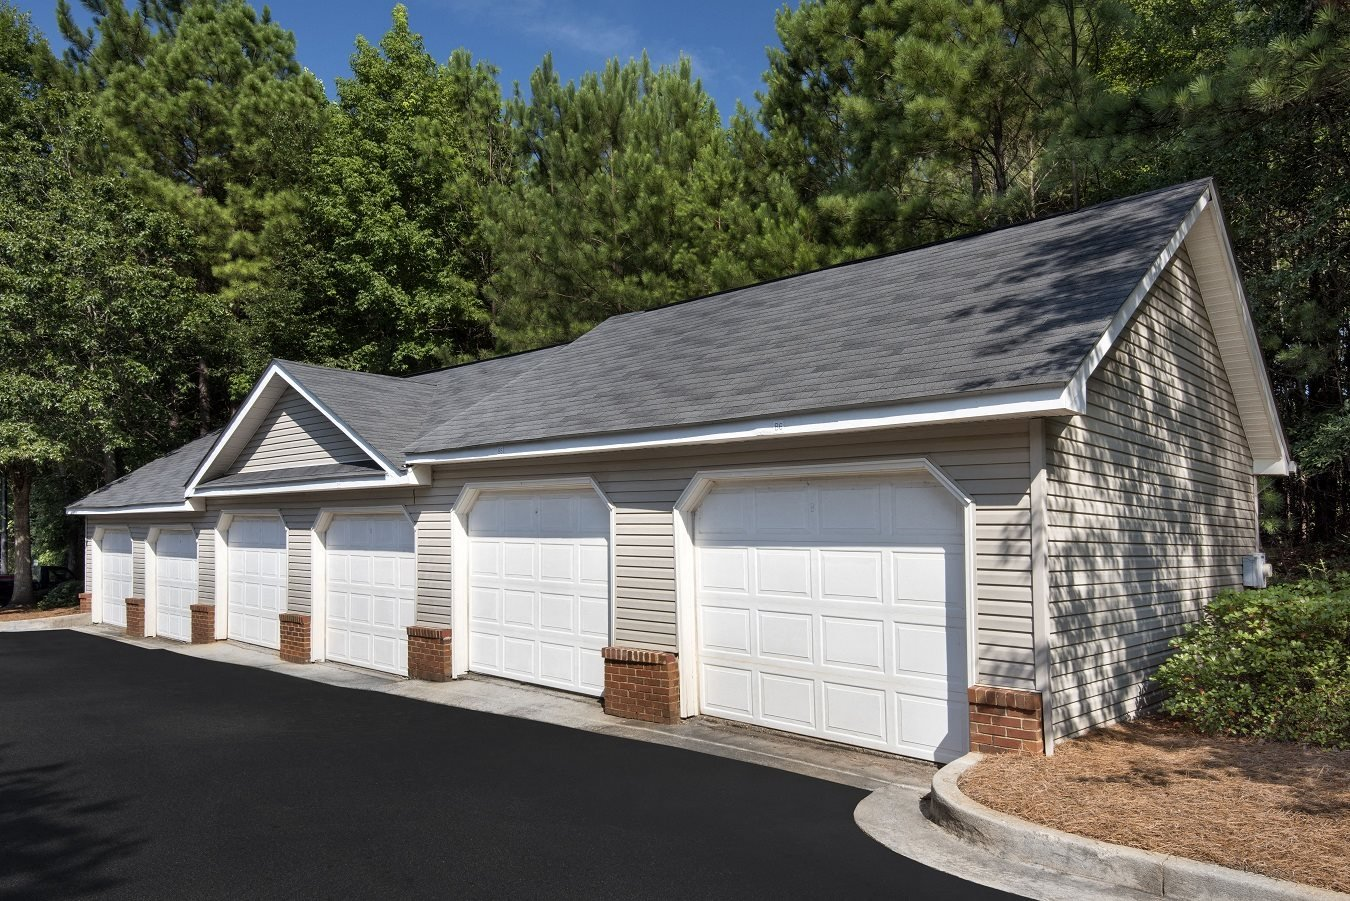 Private Garage for Residents